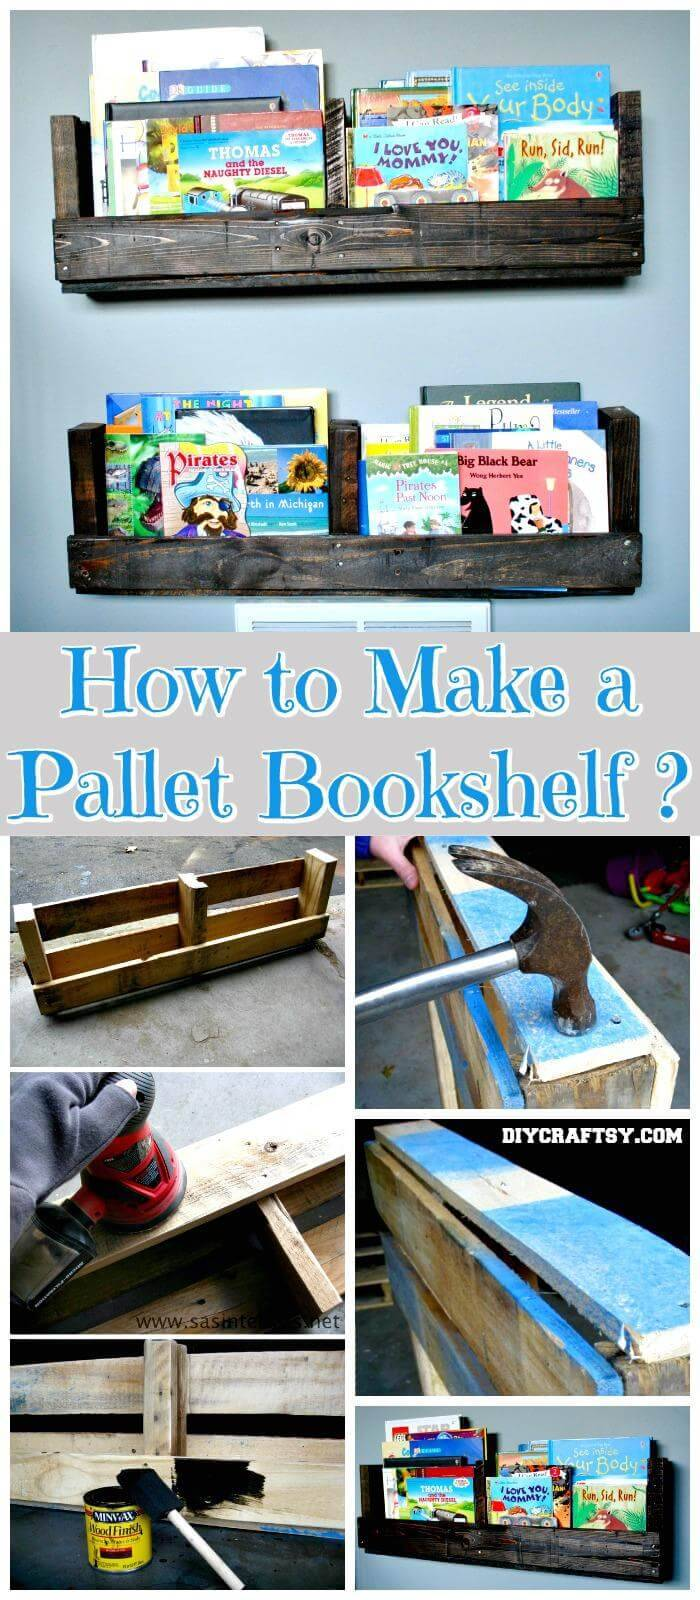 DIY Pallet Bookshelf Tutortial